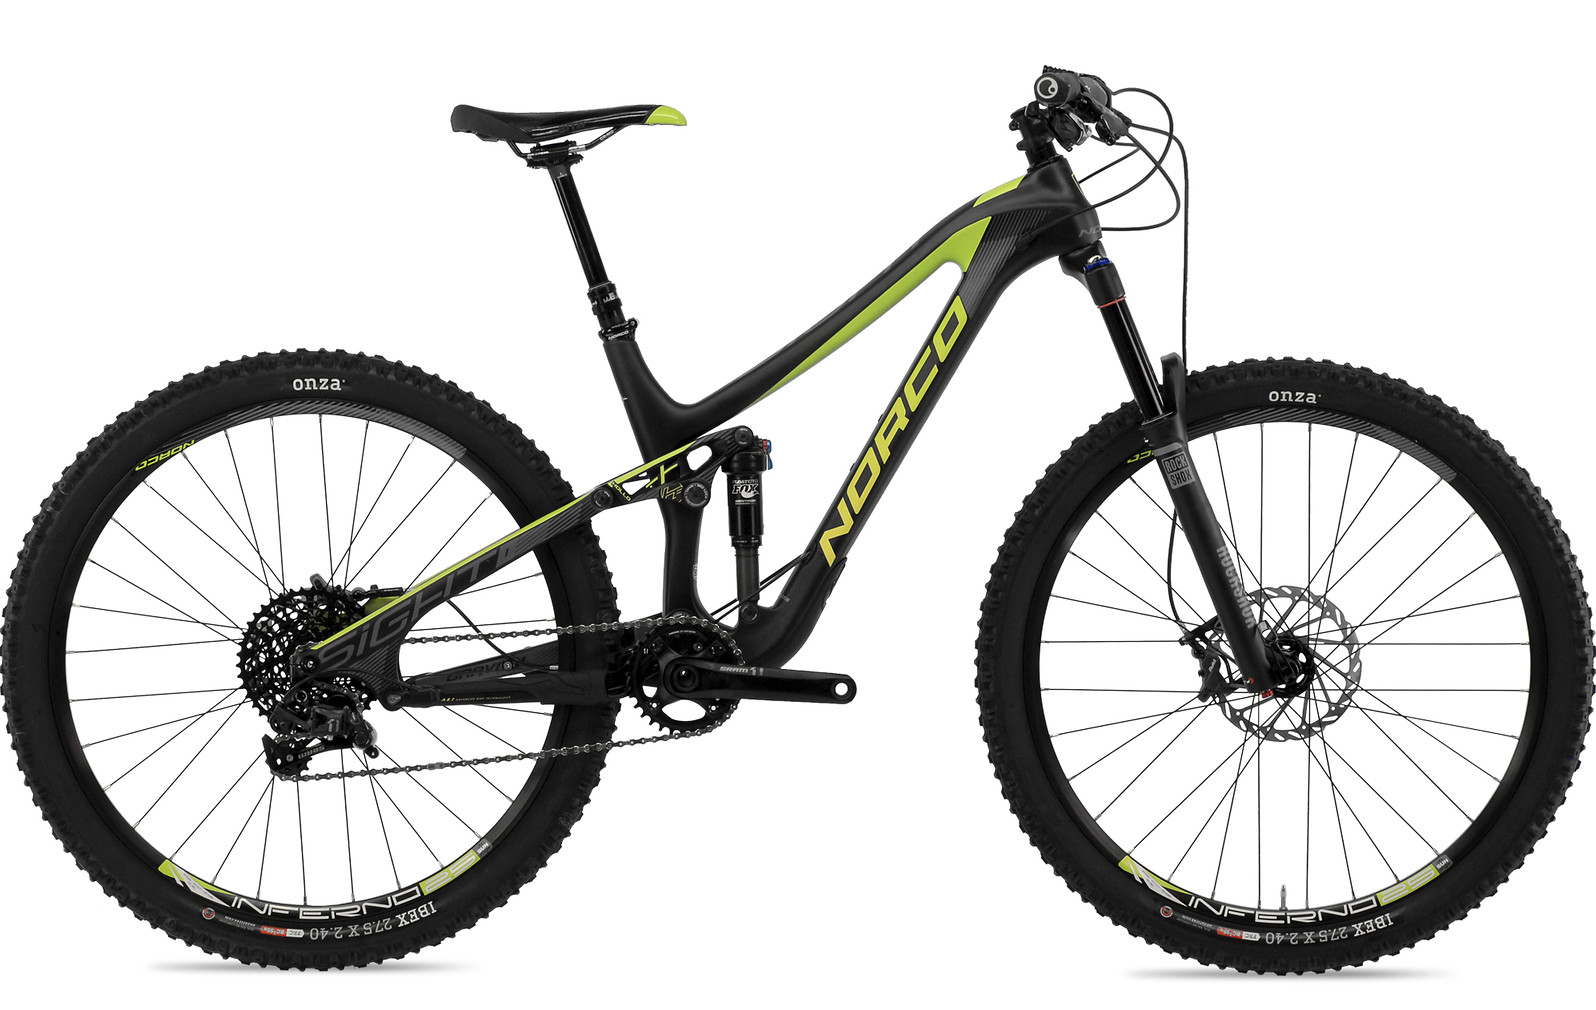 2014 Norco Sight Carbon 7.1  NORCO SIGHT CARBON 7.1